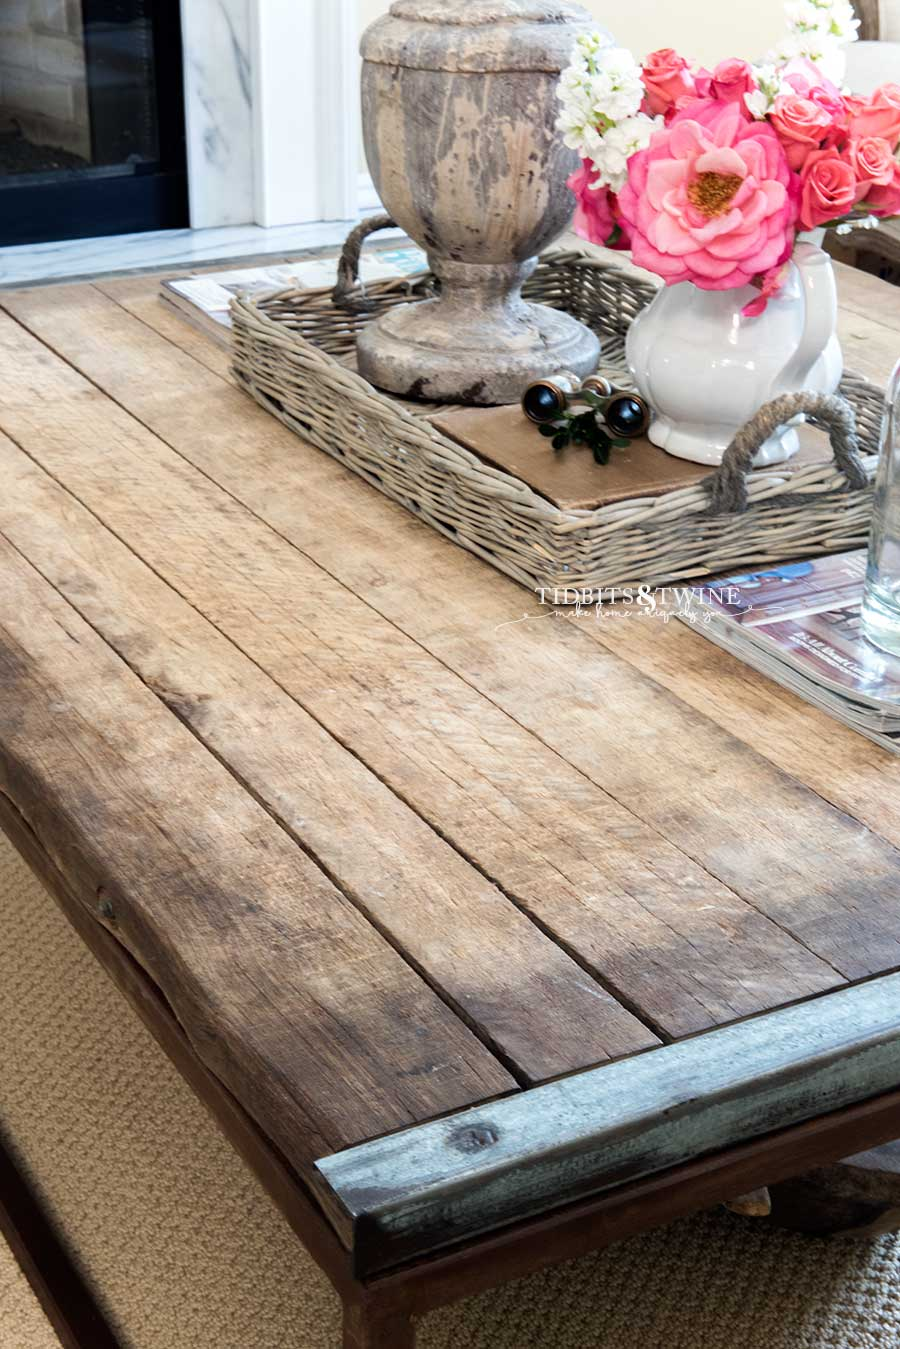 Industrial coffee table with basket centerpiece and pink roses